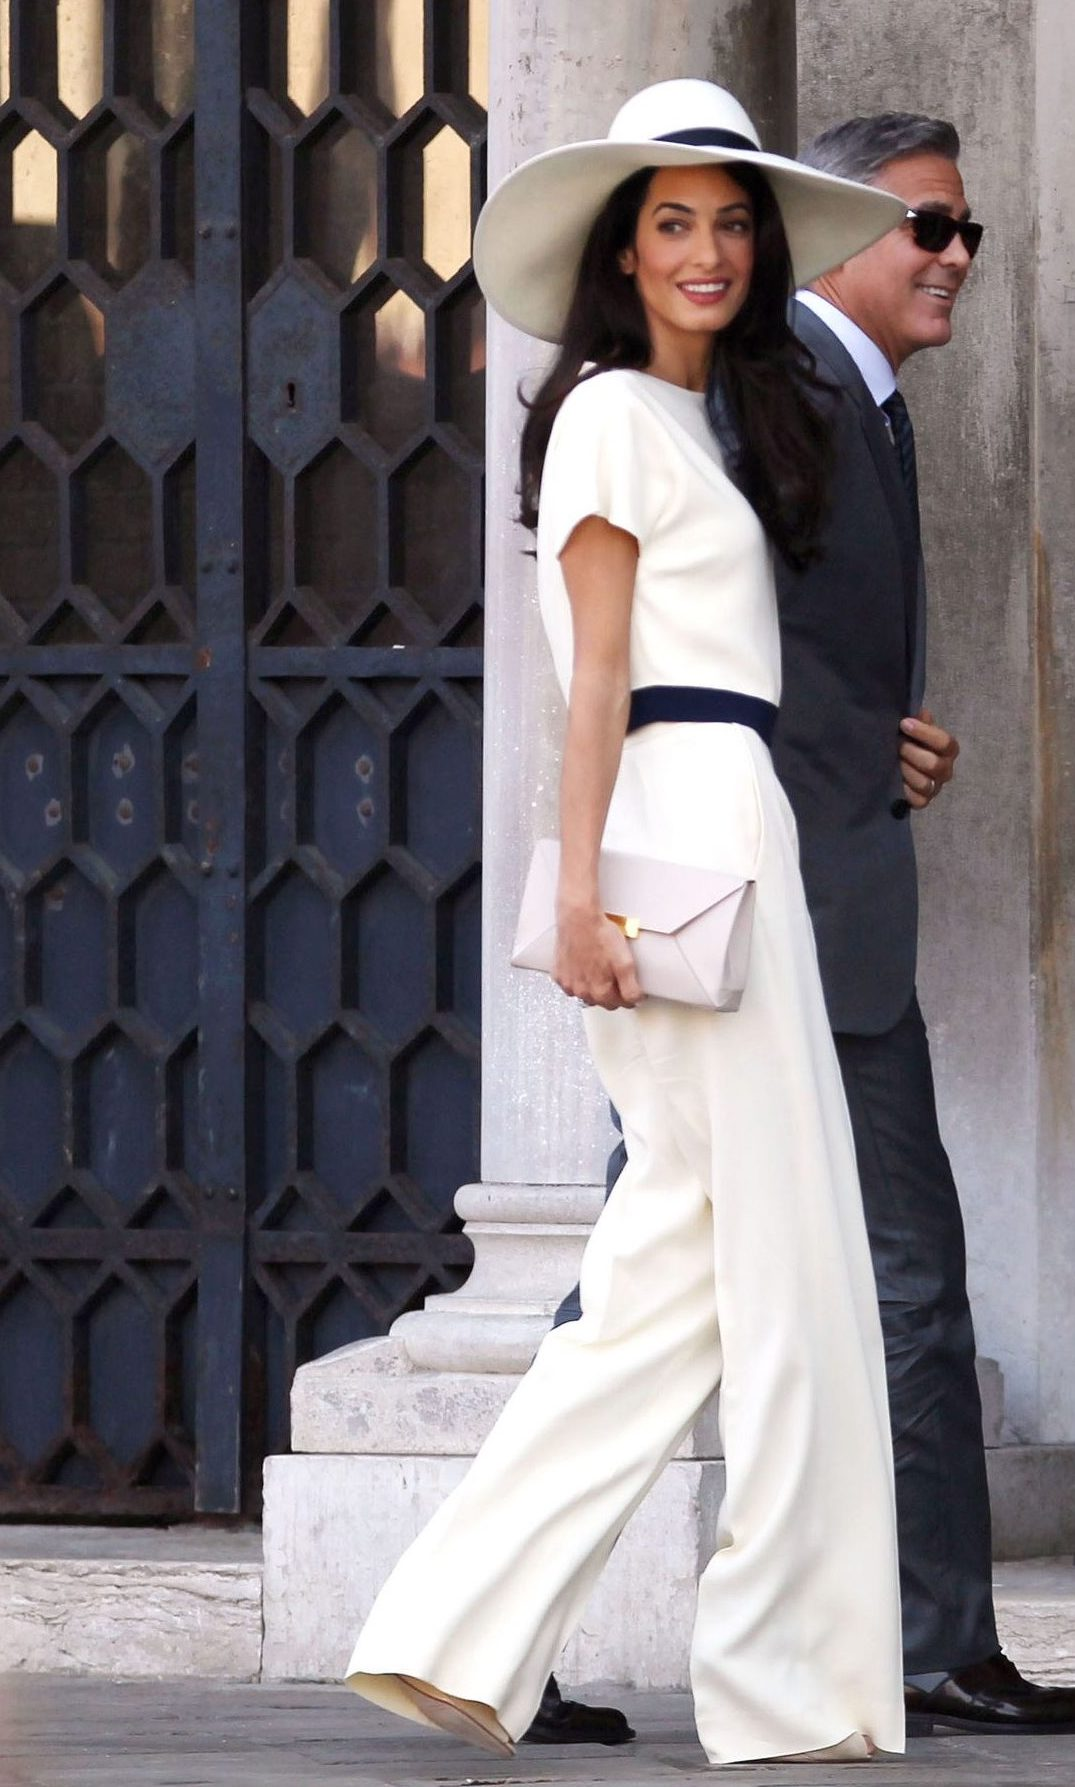 weddings-2014-09-clooney-wedding-news-george-amal-alamuddin-civil-ceremony-0929-main